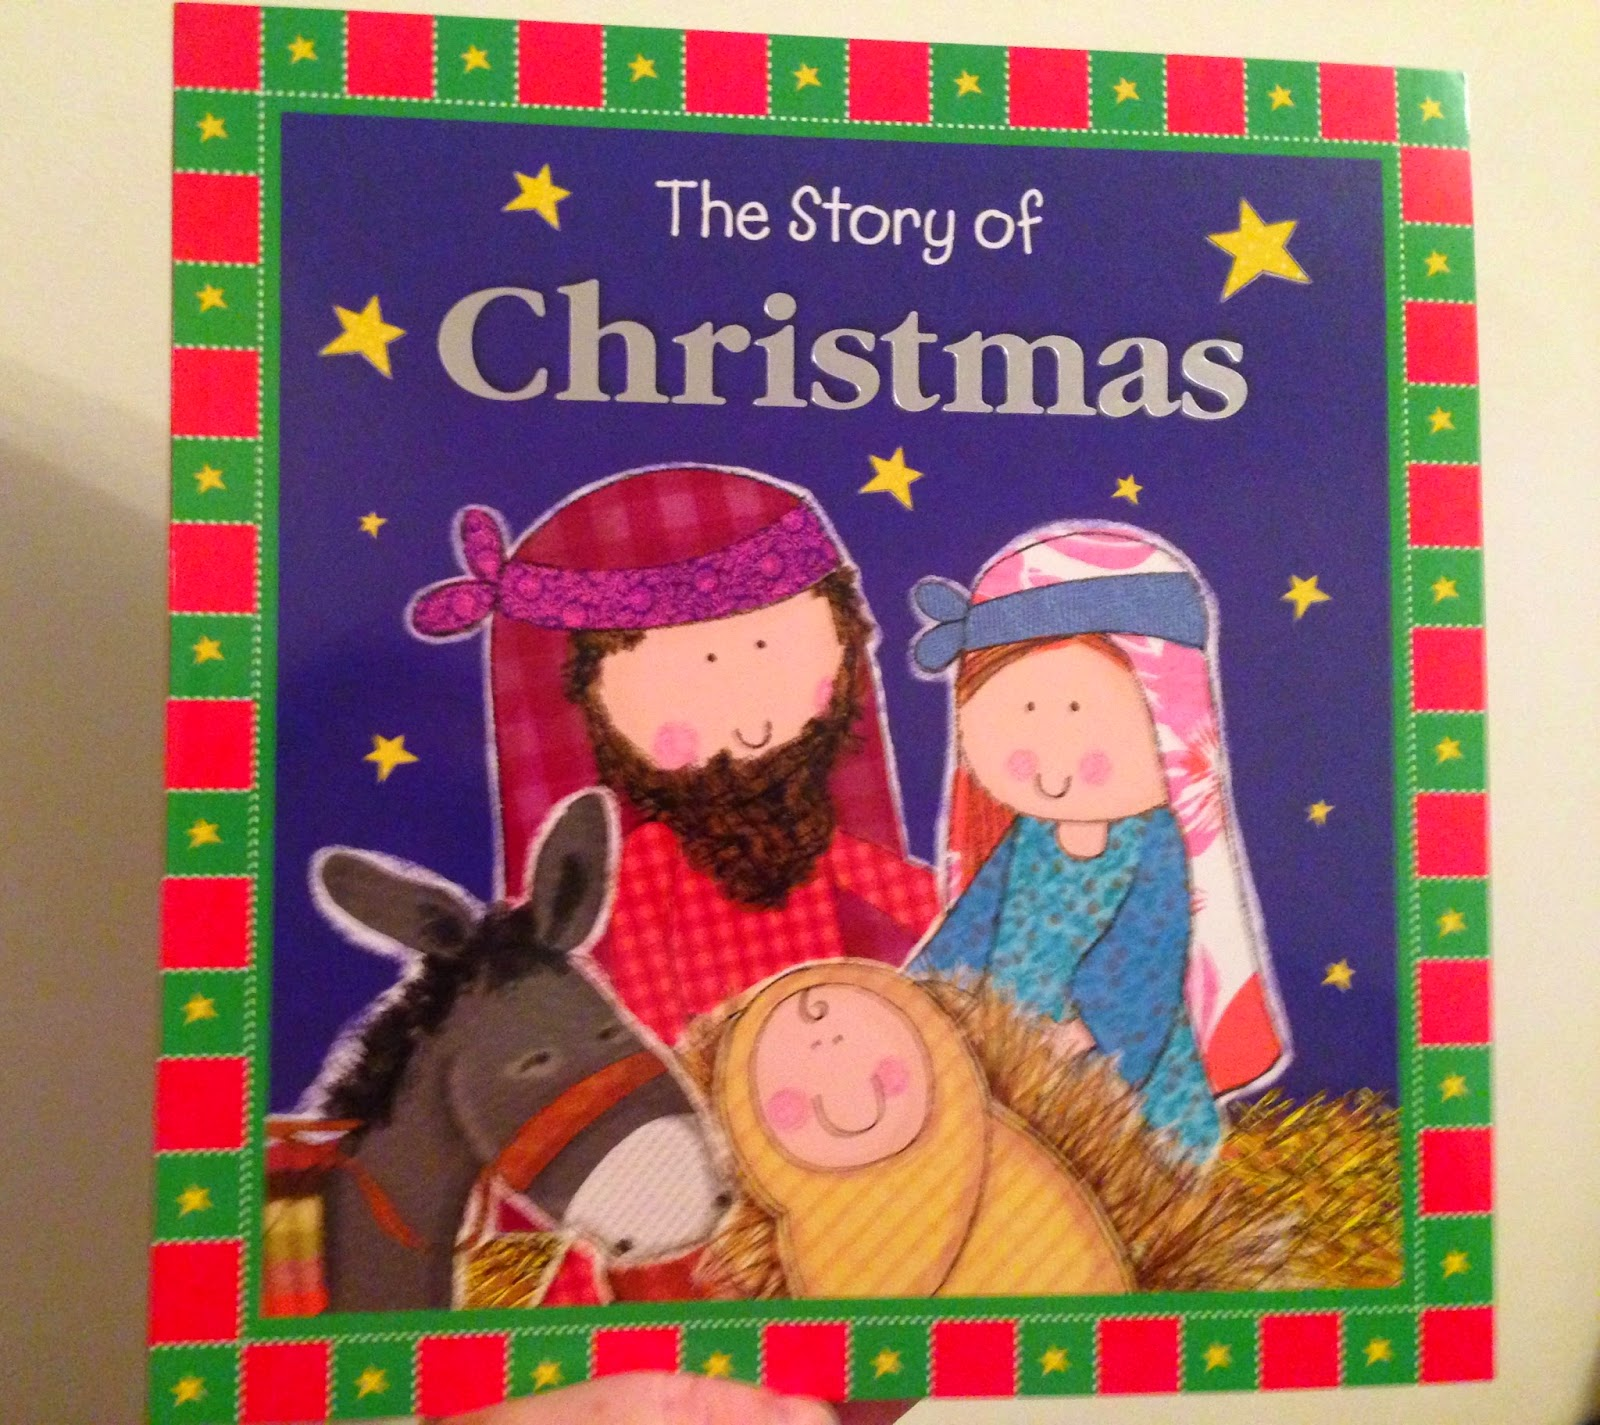 Our Christmas Book Advent tree | Ideas for the Best Children's Books to Buy this Christmas - The story of christmas